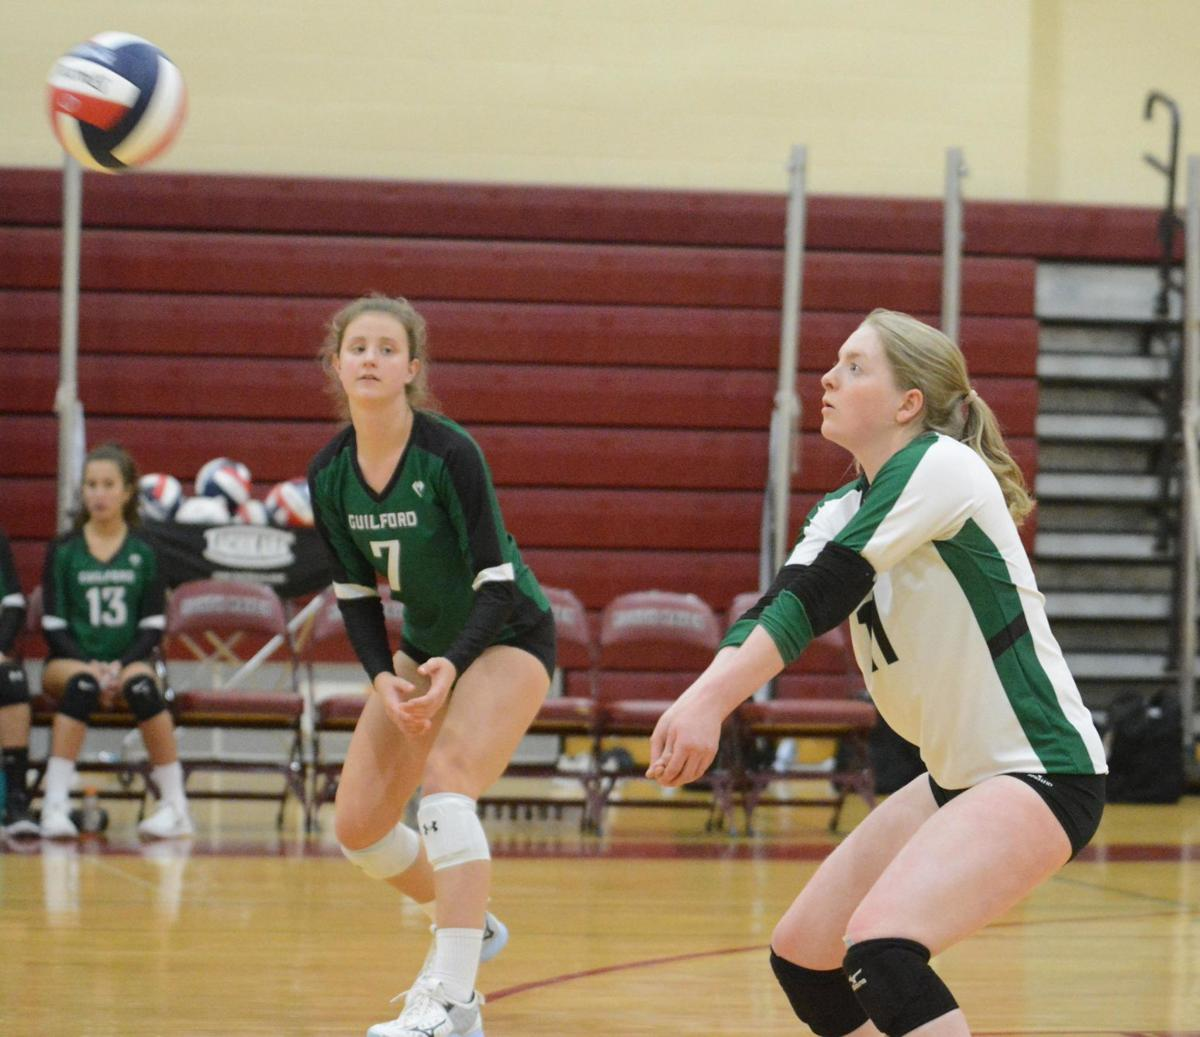 Guilford sweeps North Haven